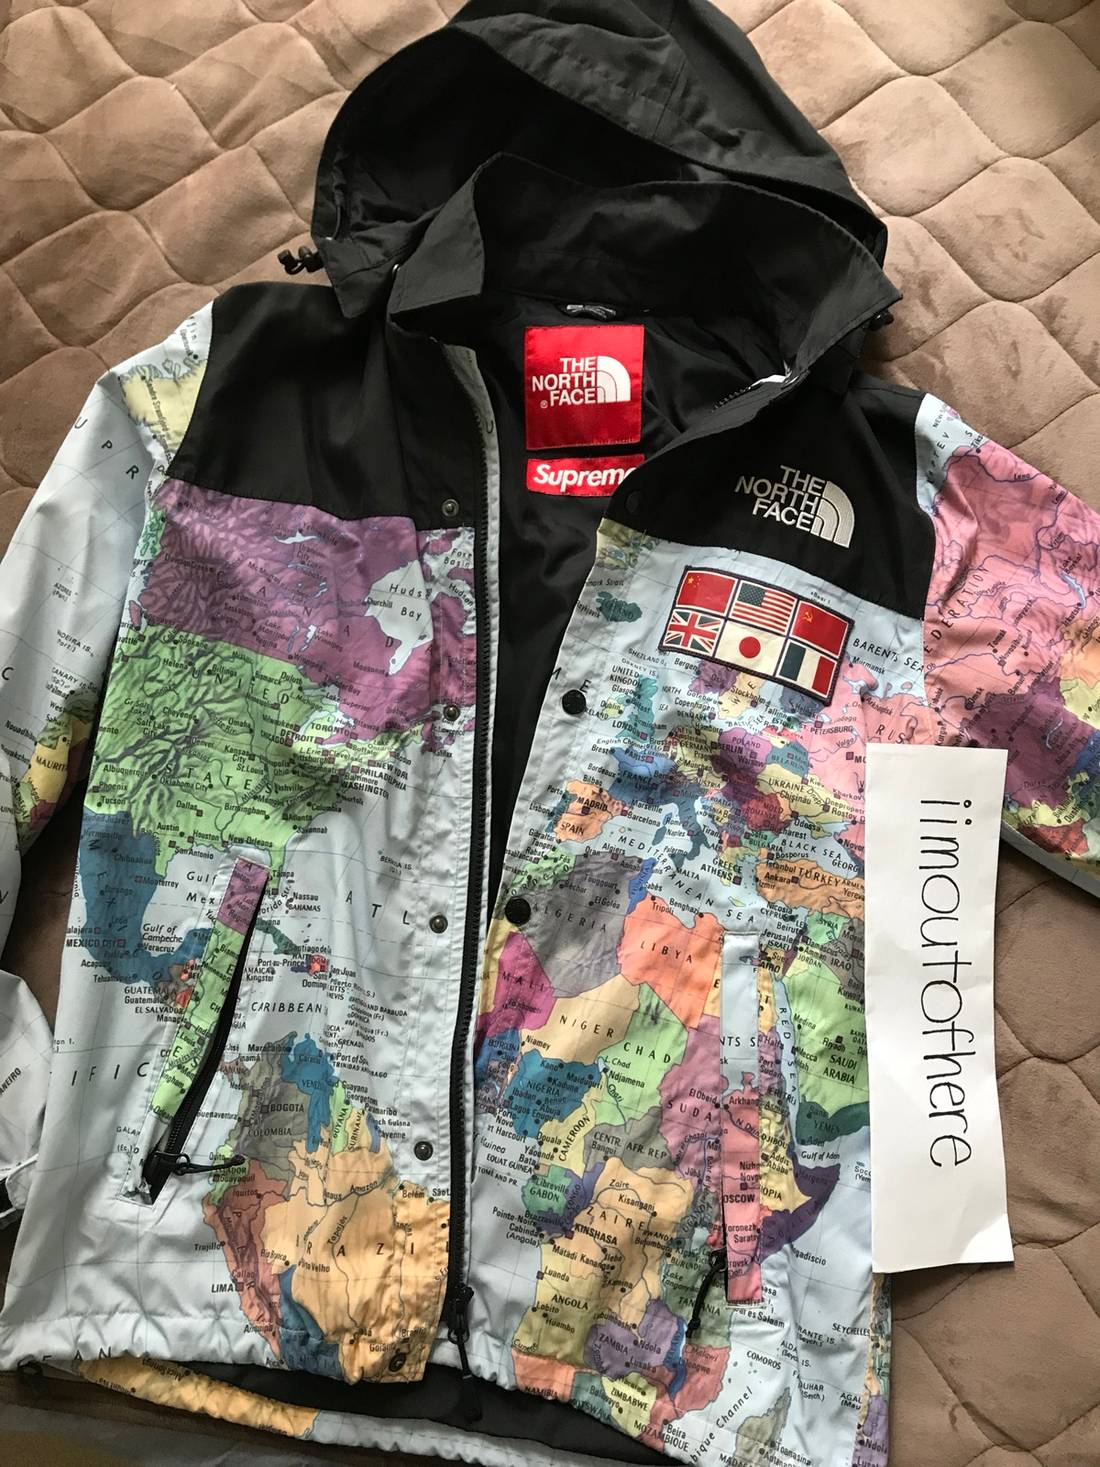 North face x supreme world map jacket the north face x supreme world map jacket gumiabroncs Images